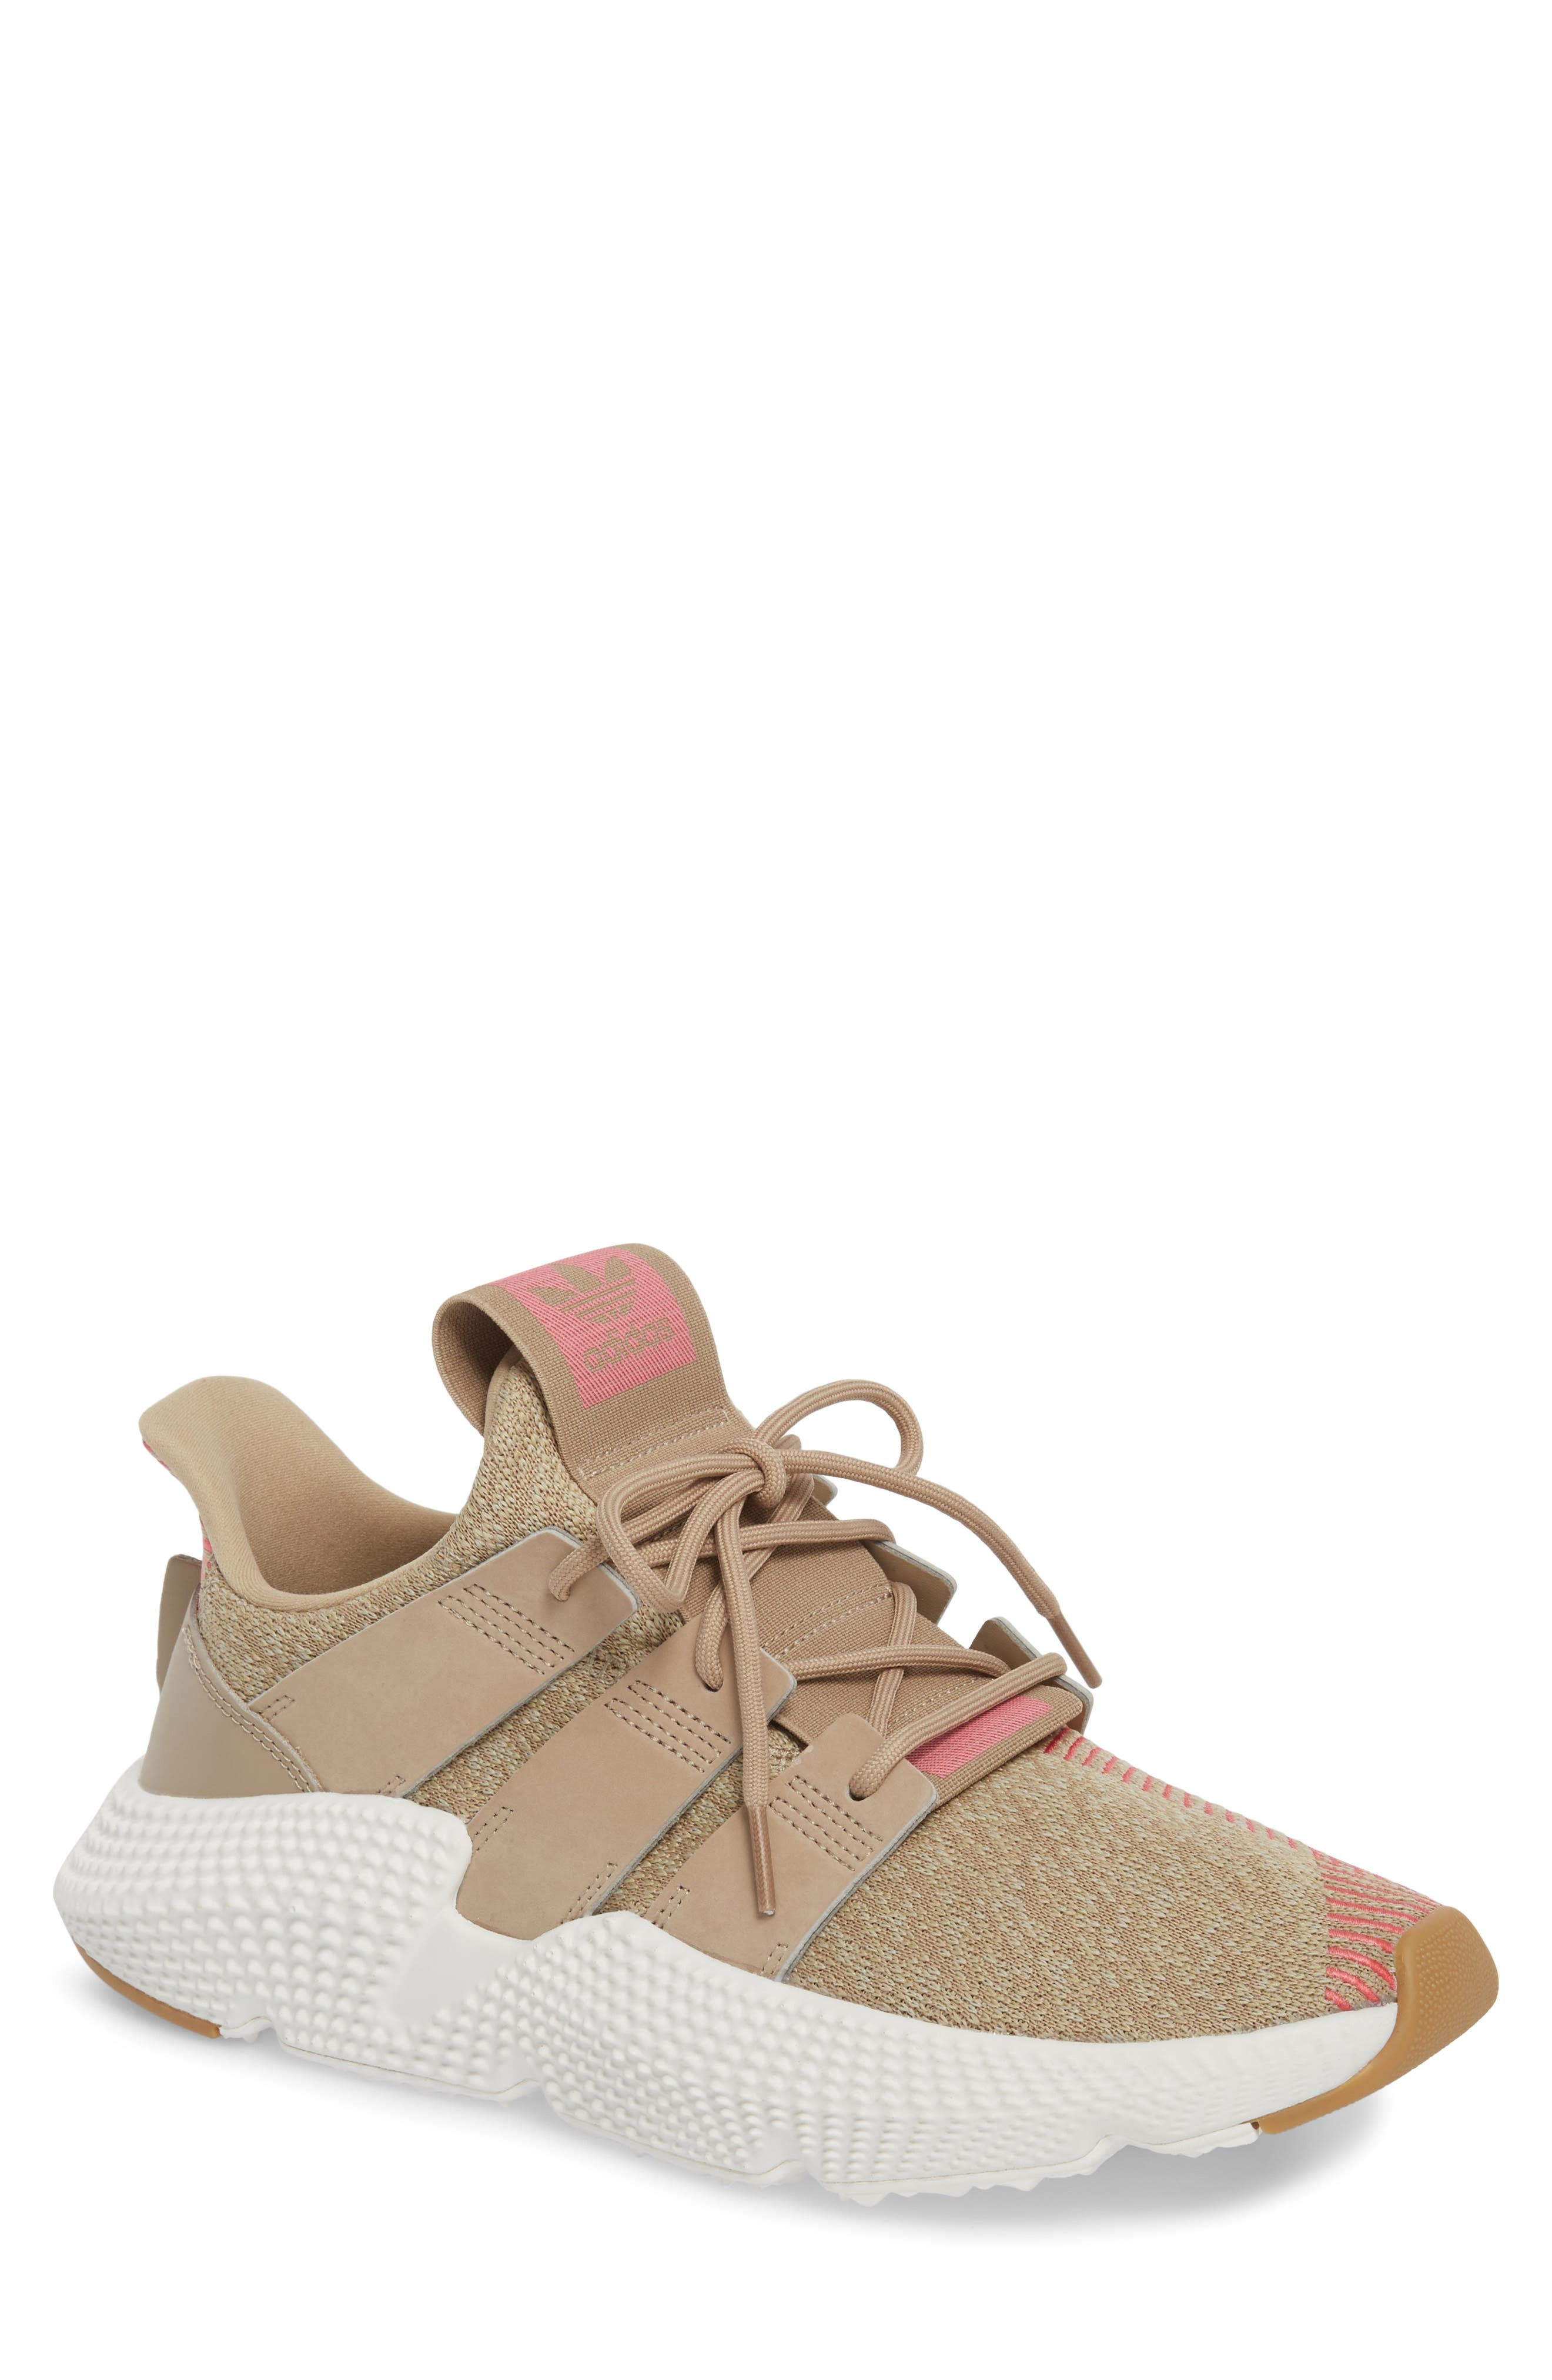 Prophere Sneaker,                         Main,                         color, Trace Khaki/ Chalk Pink